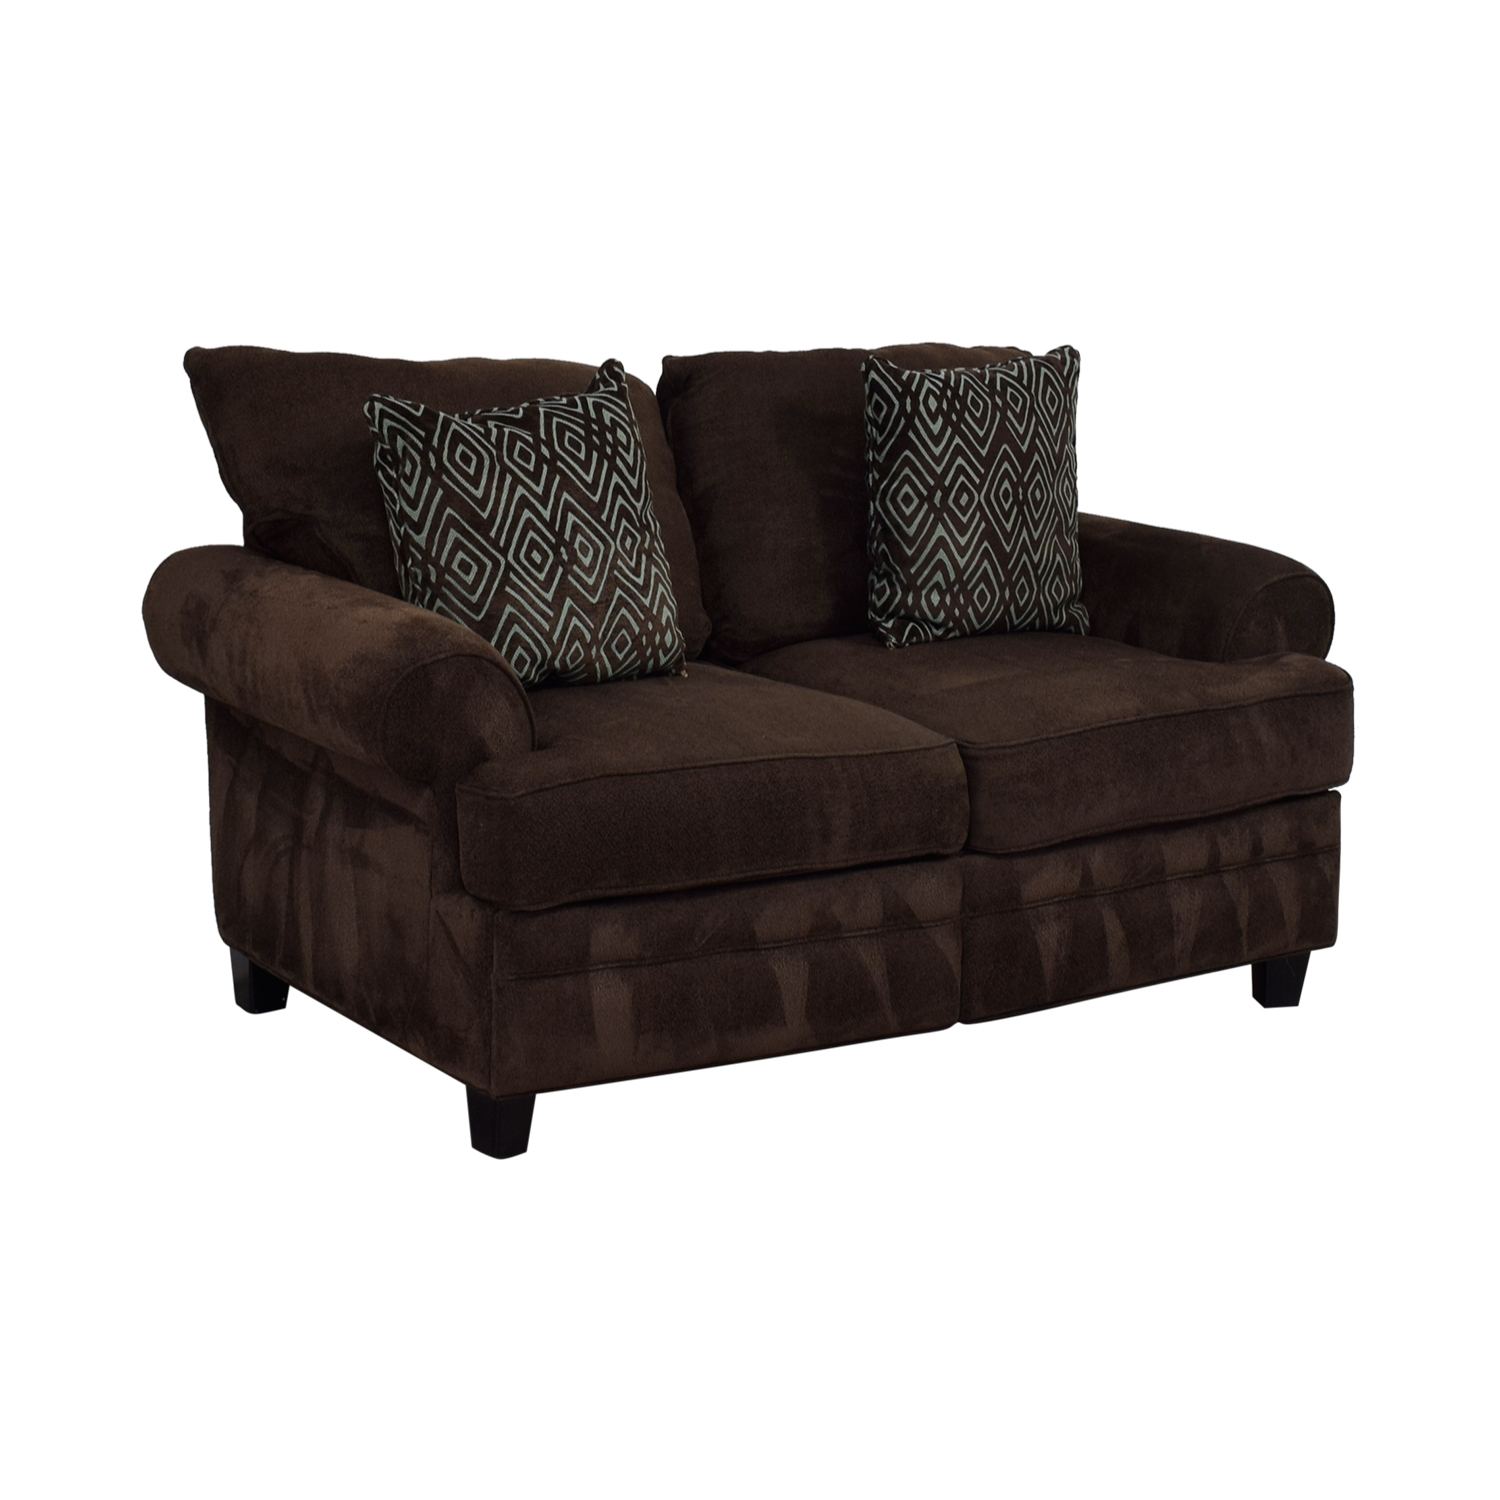 shop Bob's Furniture Brown Two-Cushion Love Seat Bob's Furniture Sofas